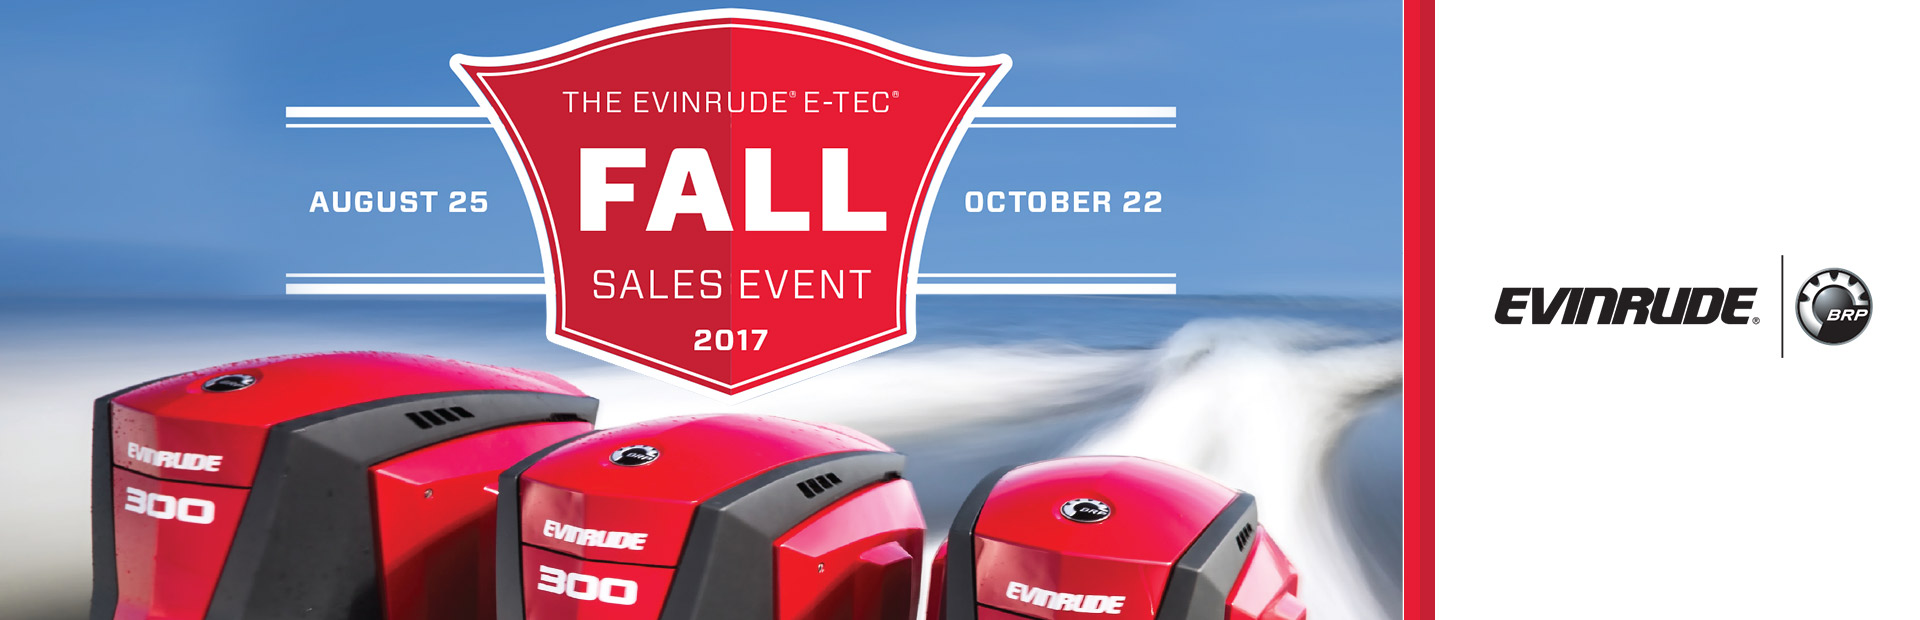 Evinrude: The Evinrude® E-TEC® Fall Sales Event